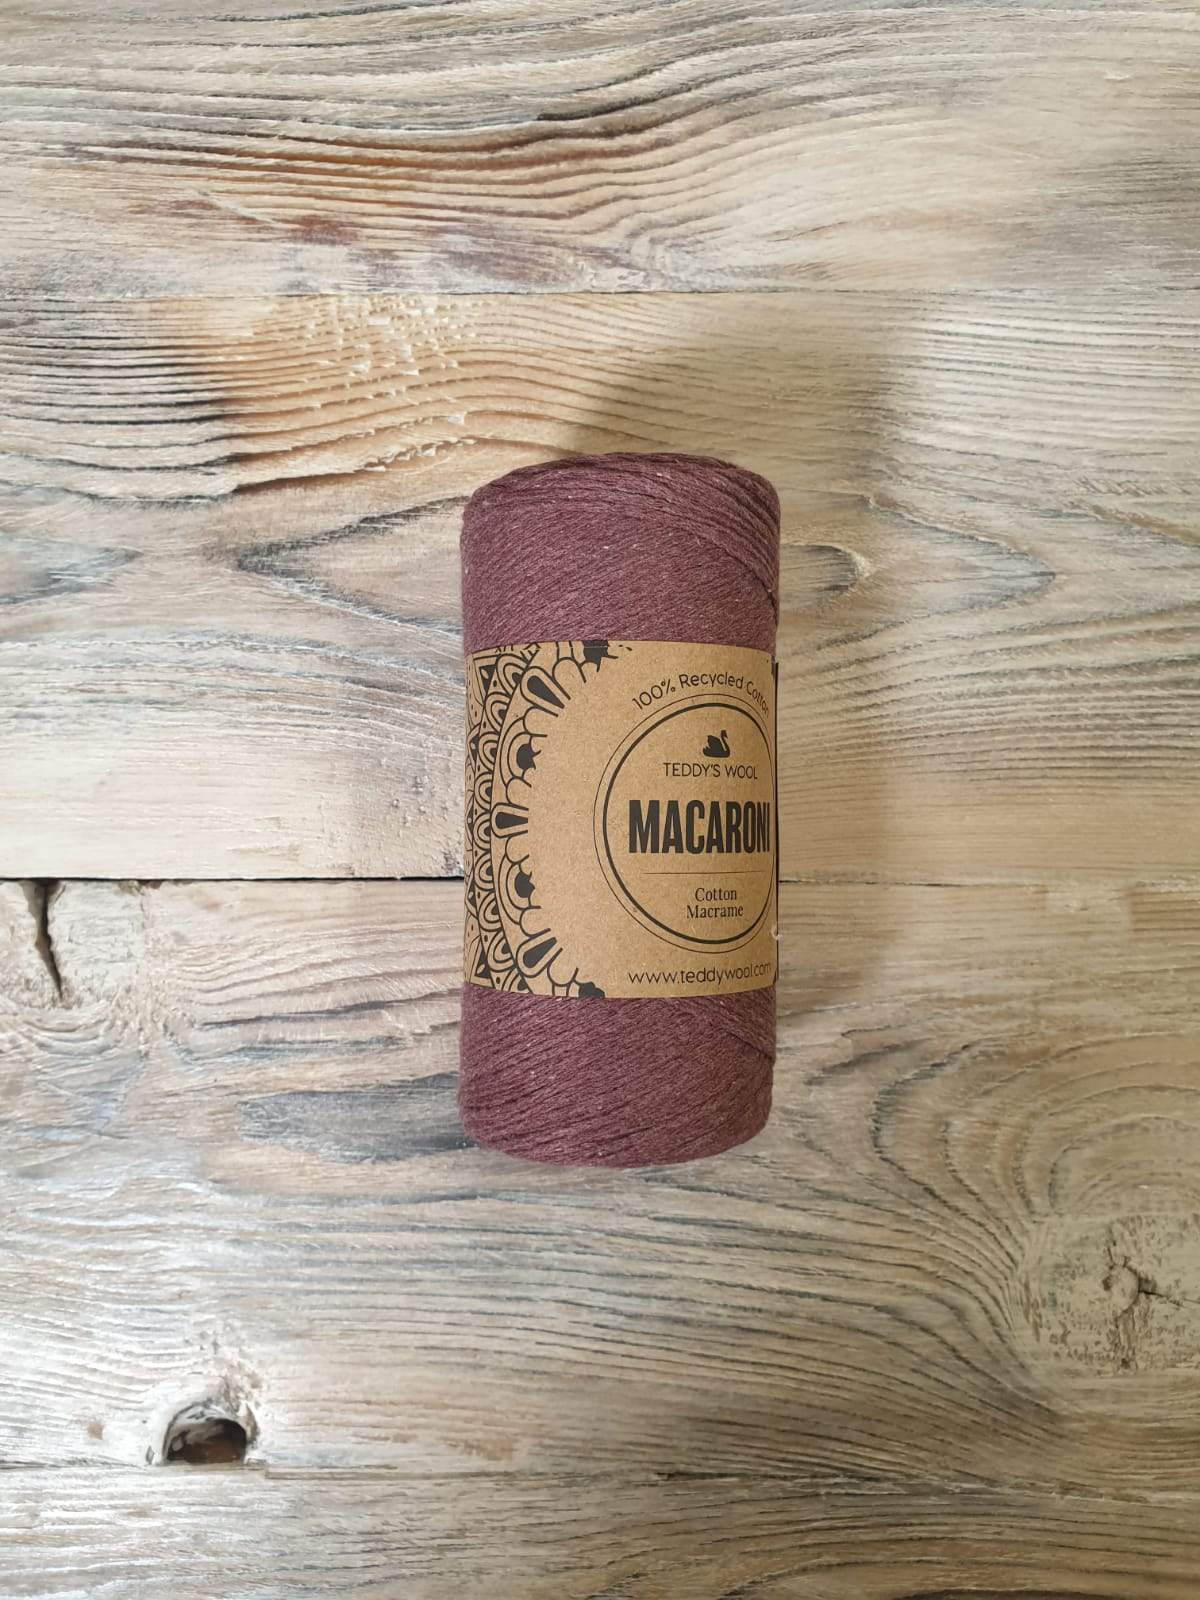 Macaroni Cotton Macrame - סגול חציל